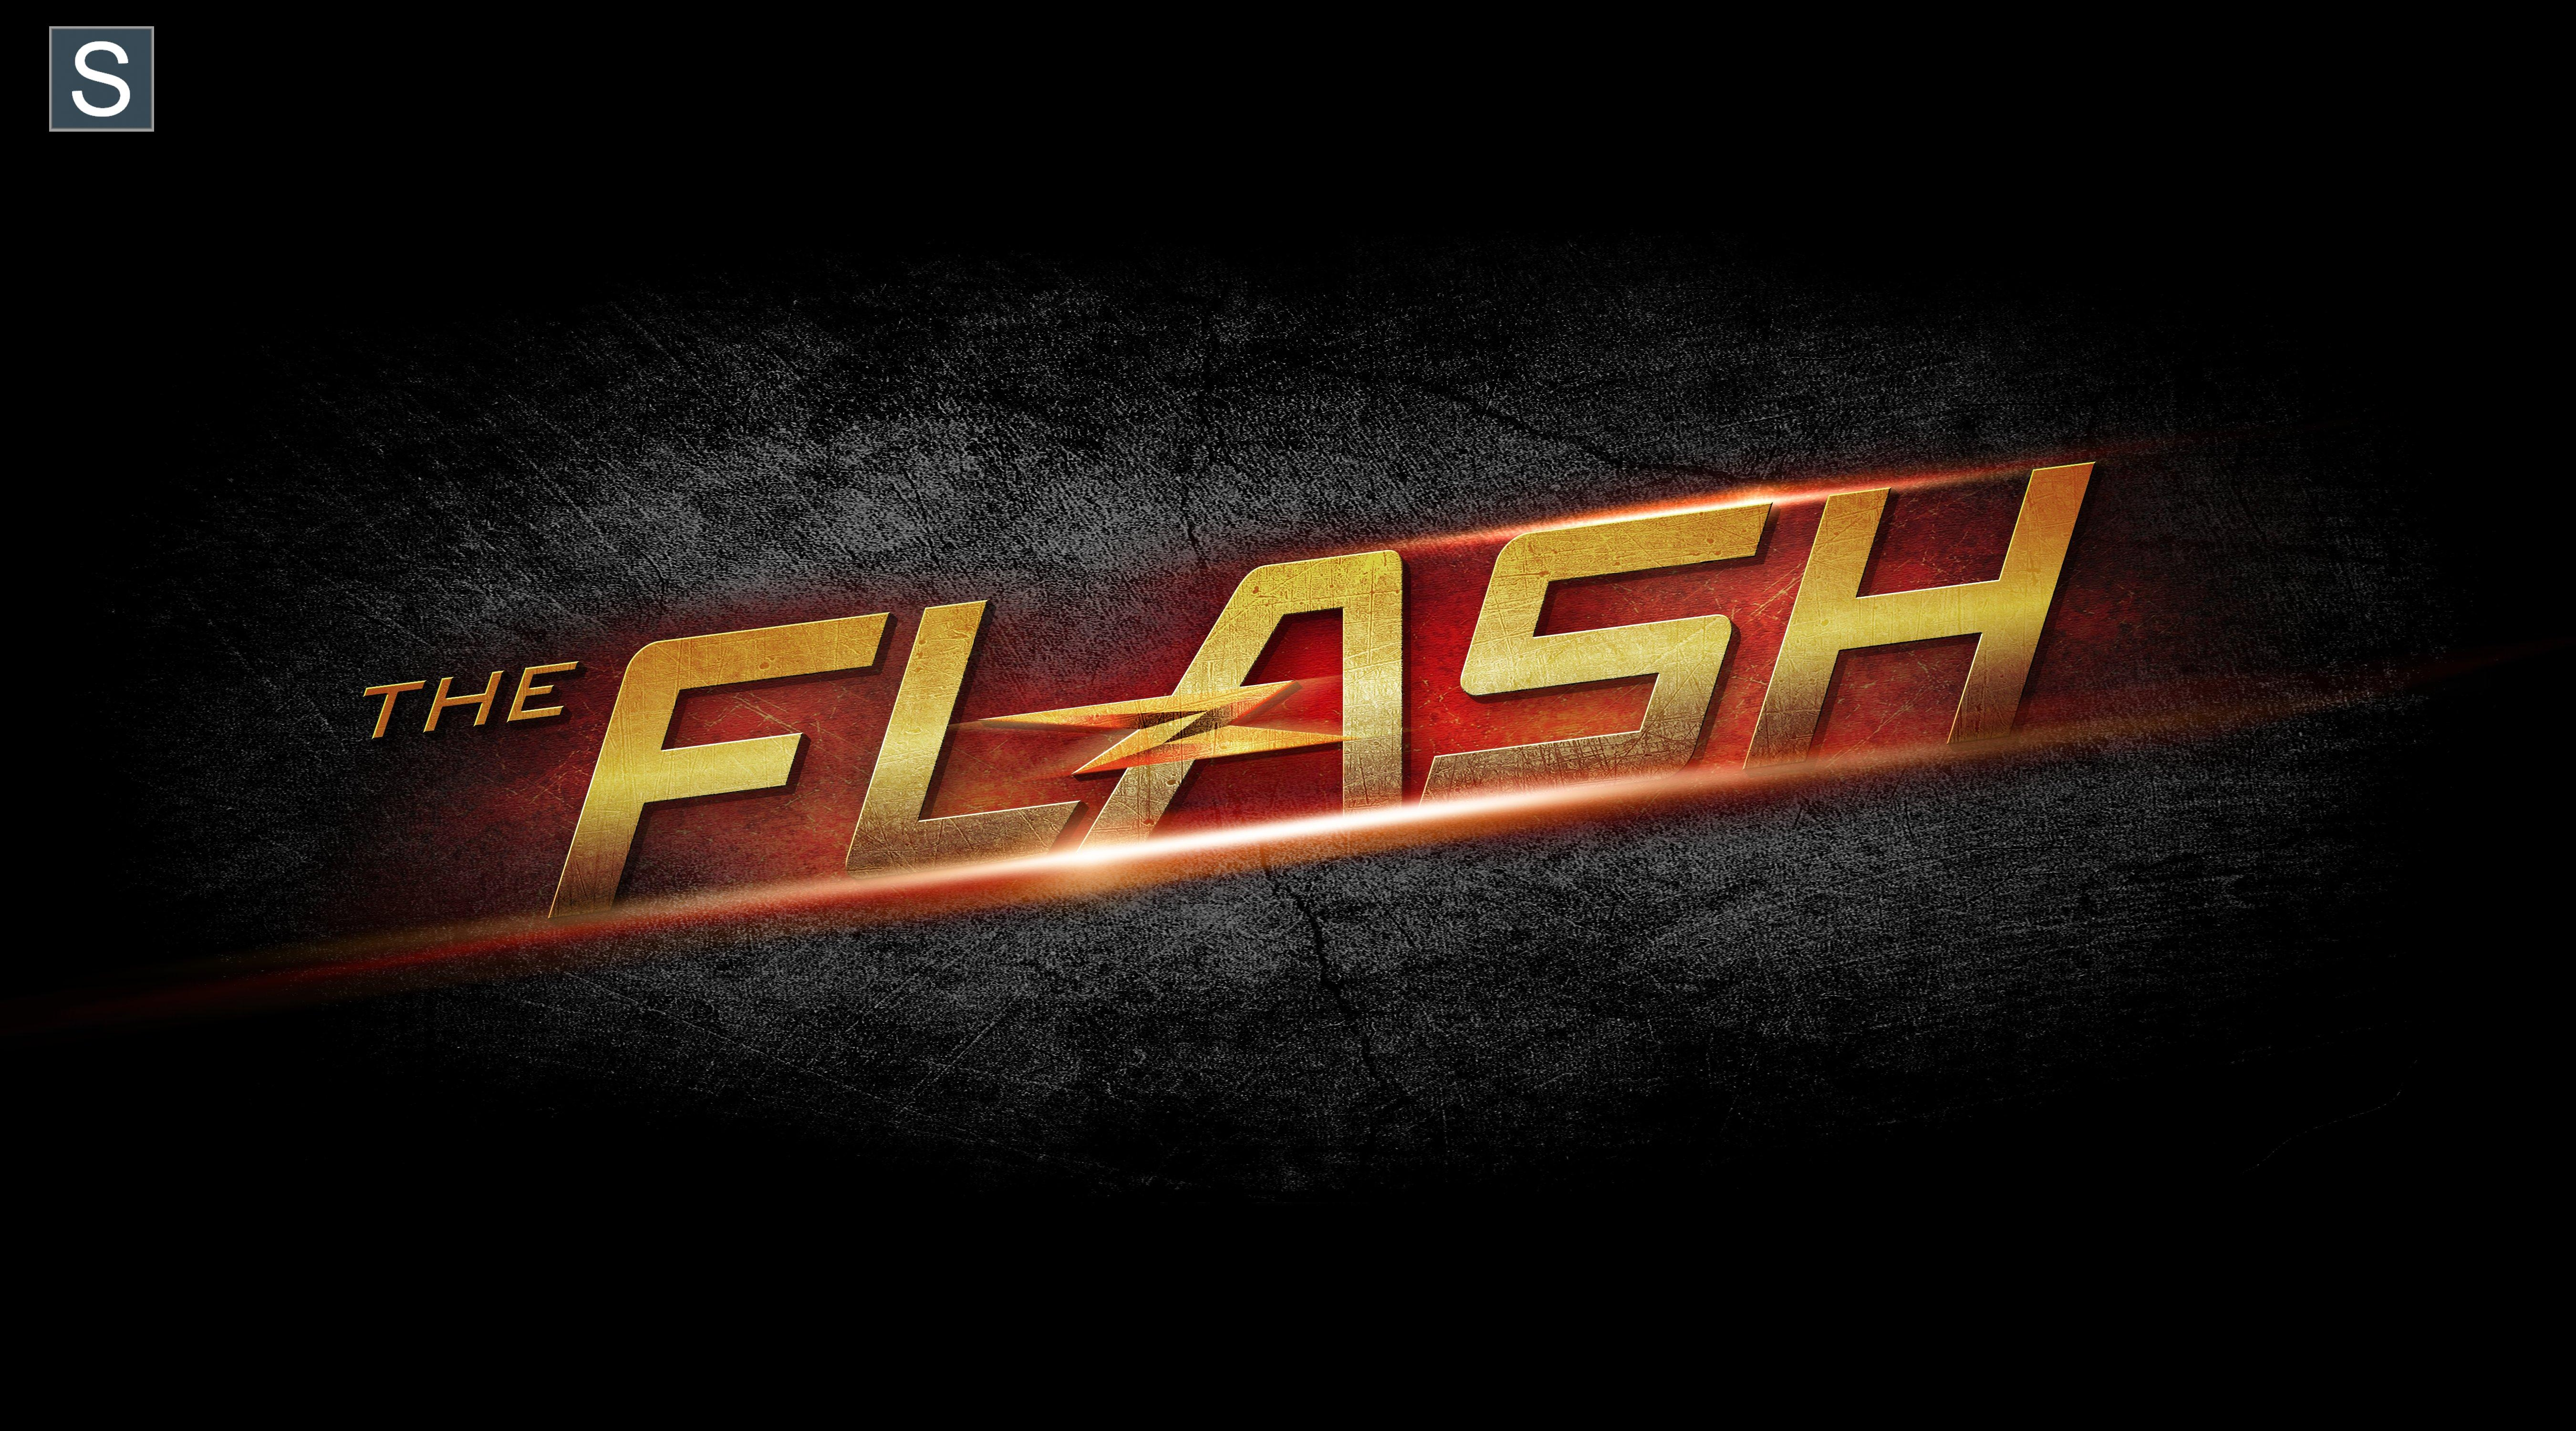 The Flash CW images The Flash   Official Logo HD wallpaper and 5400x3000